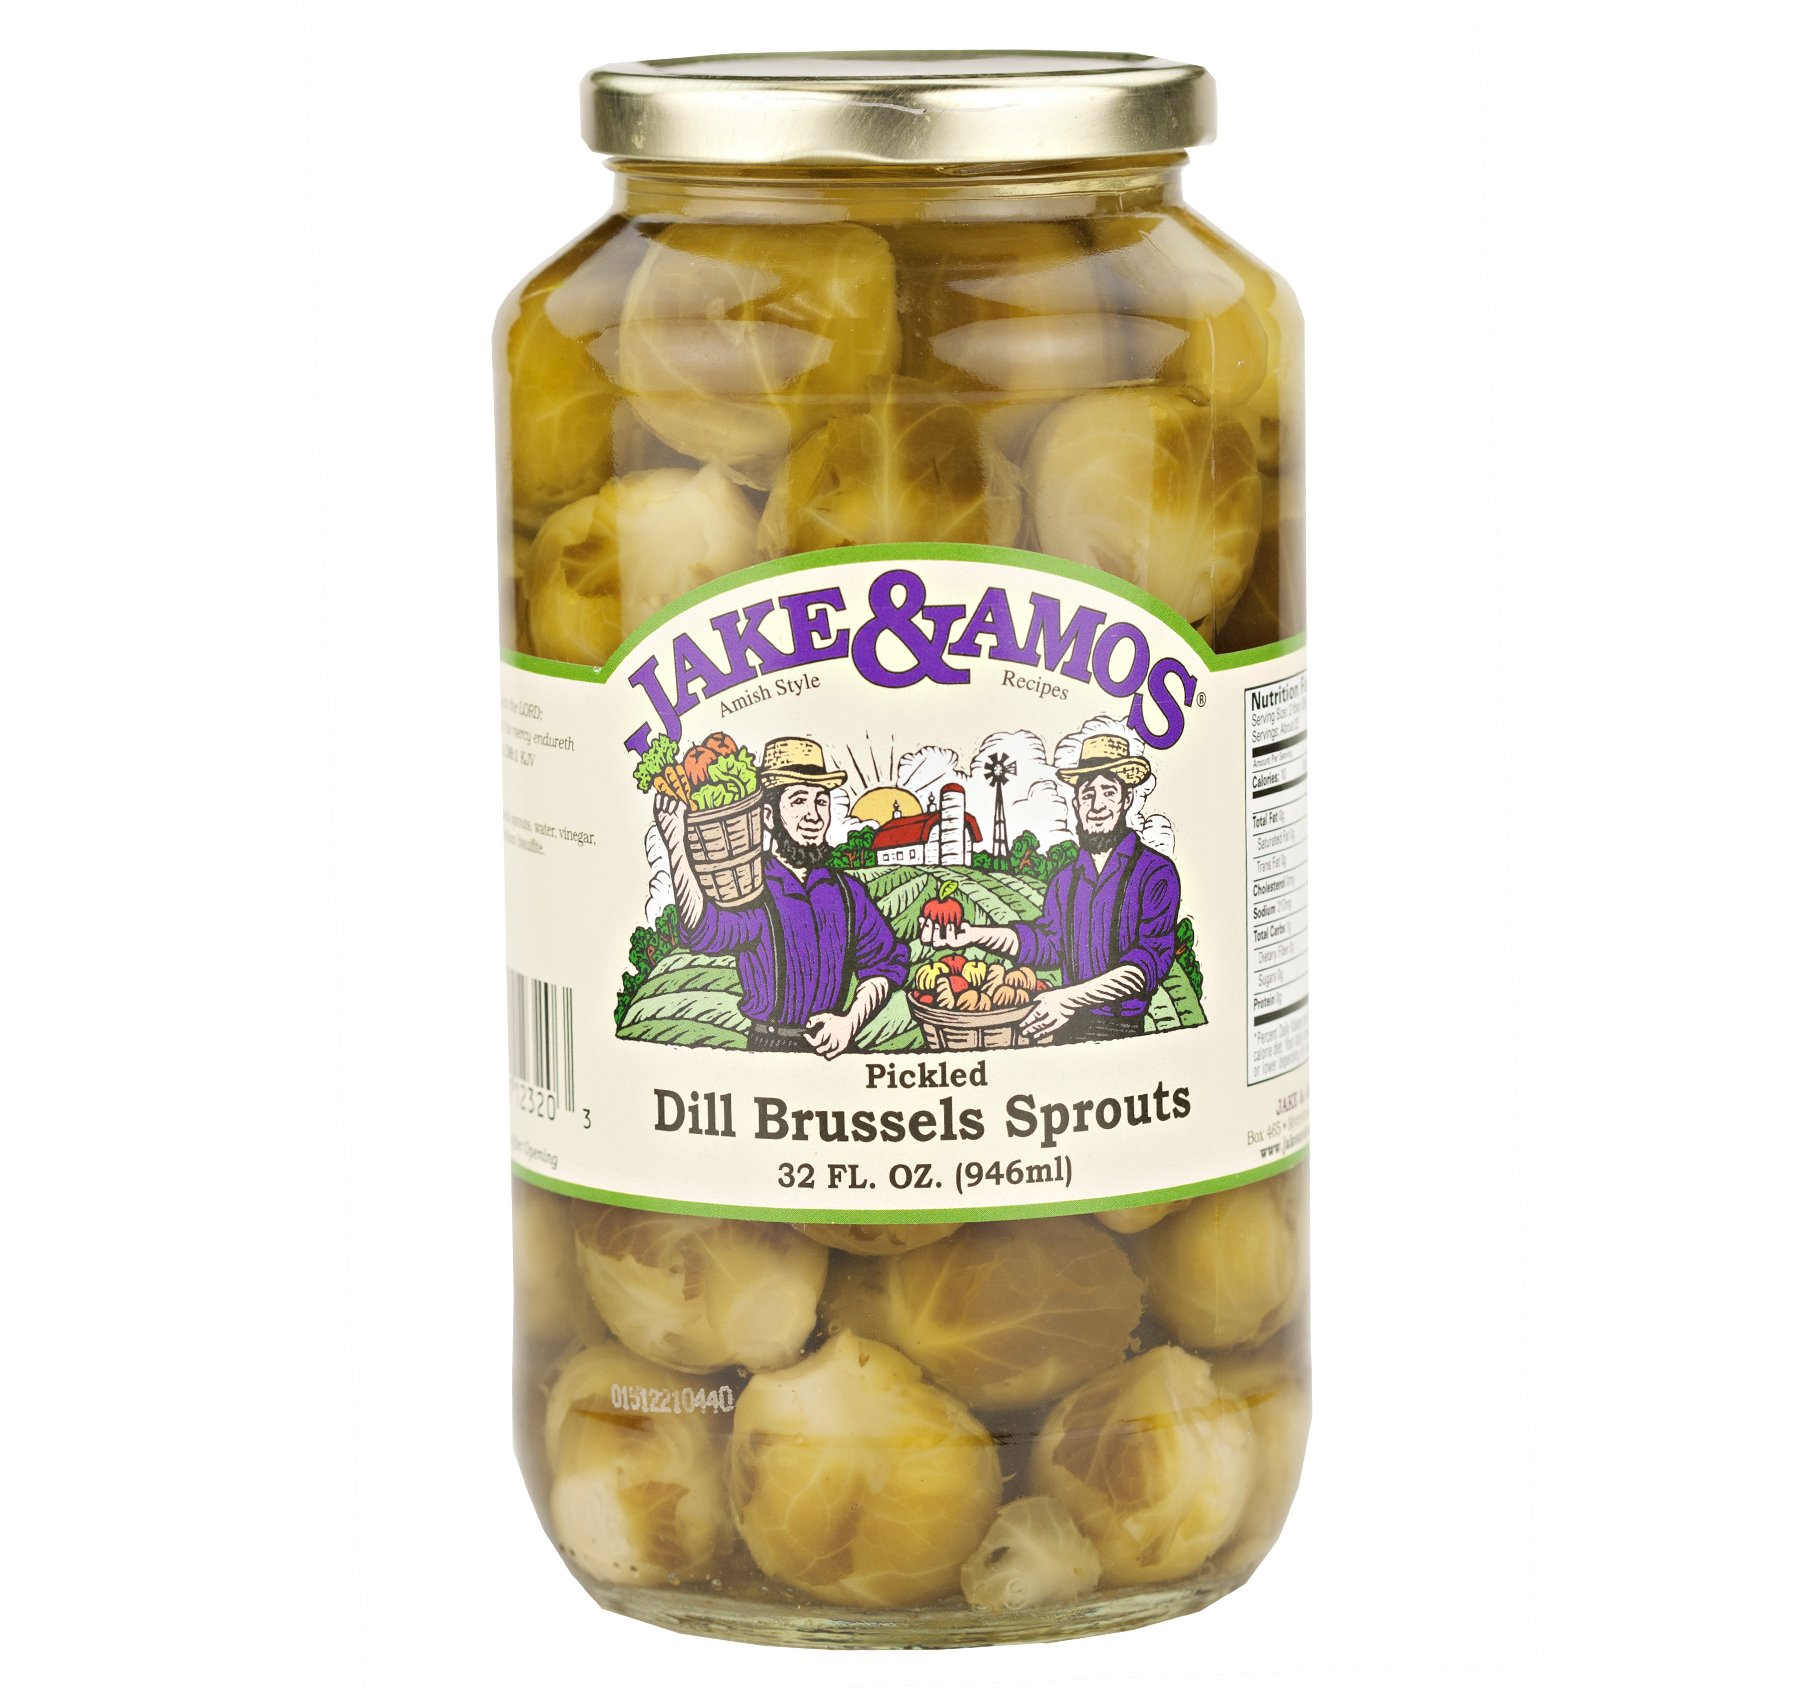 Jake & Amos Pickled Dill Brussels Sprouts 32 Oz. (2 Jars)